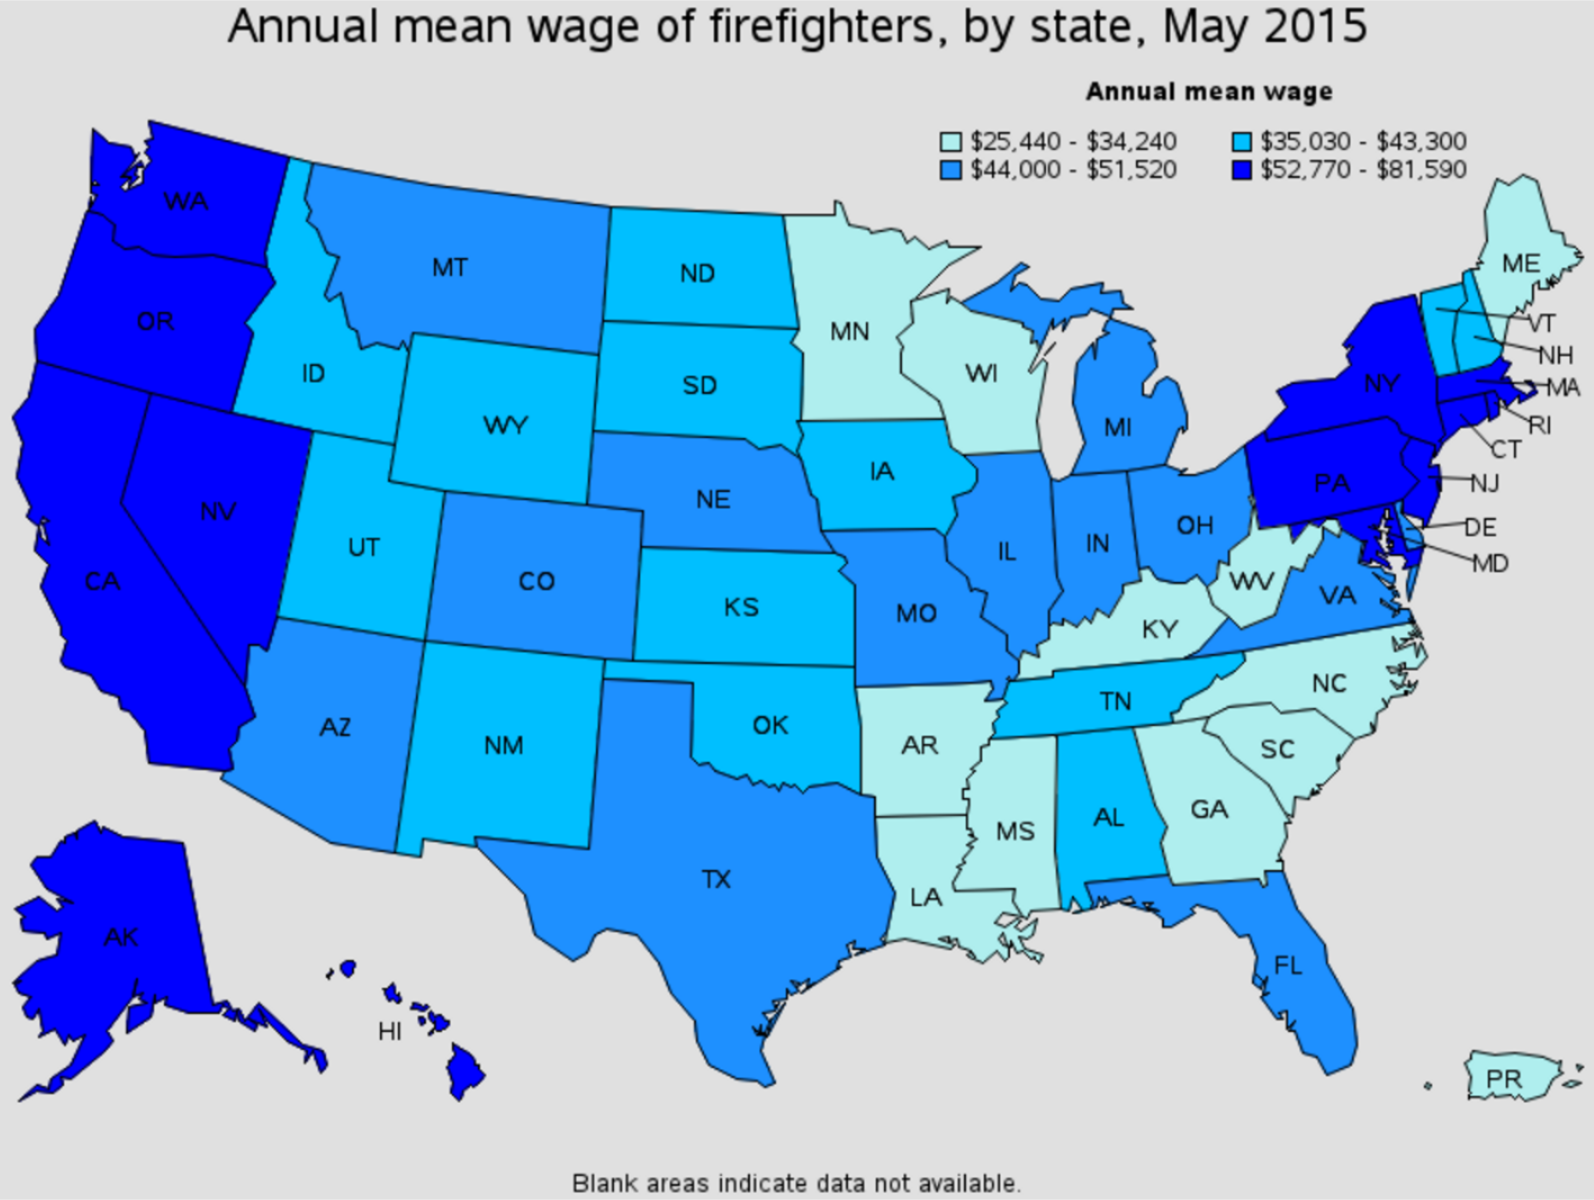 firefighter average salary by state Visalia California